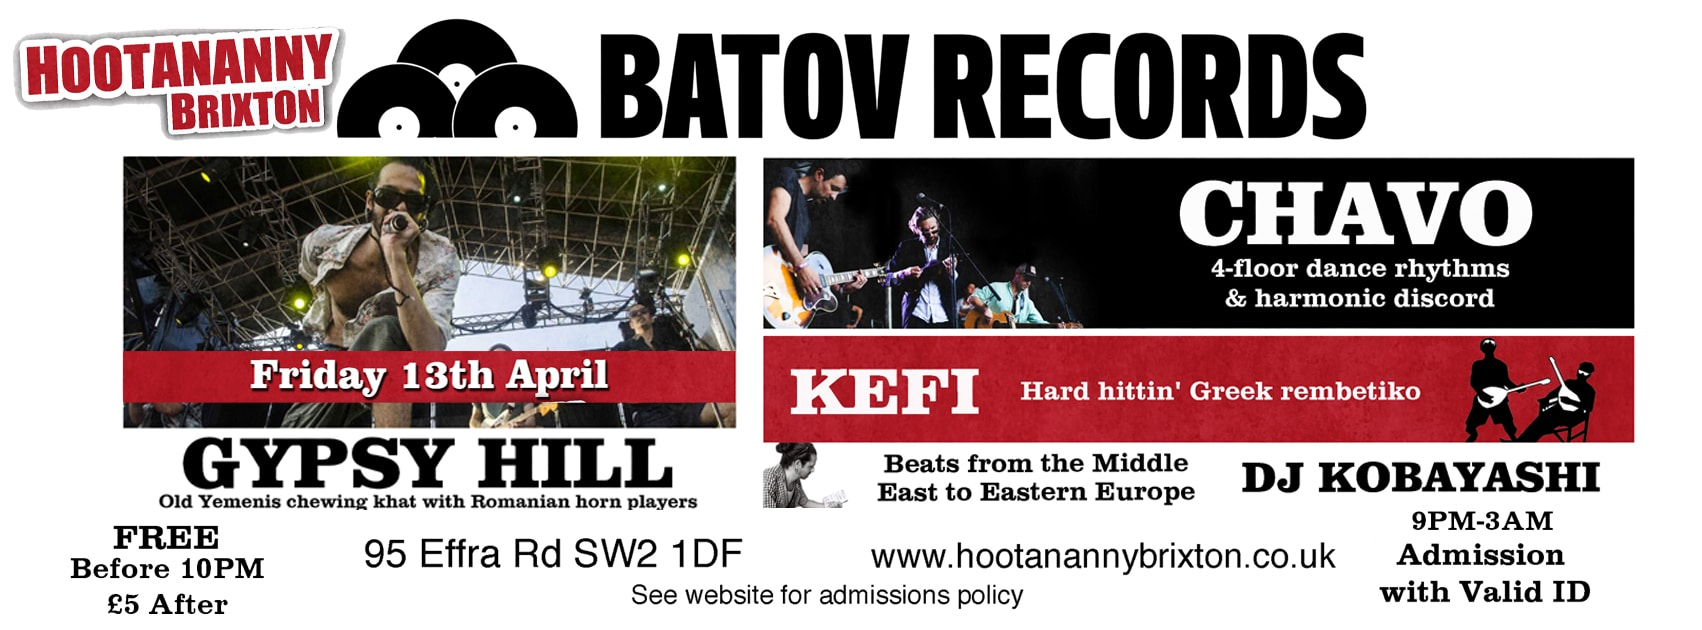 Batov Records at Hootanany